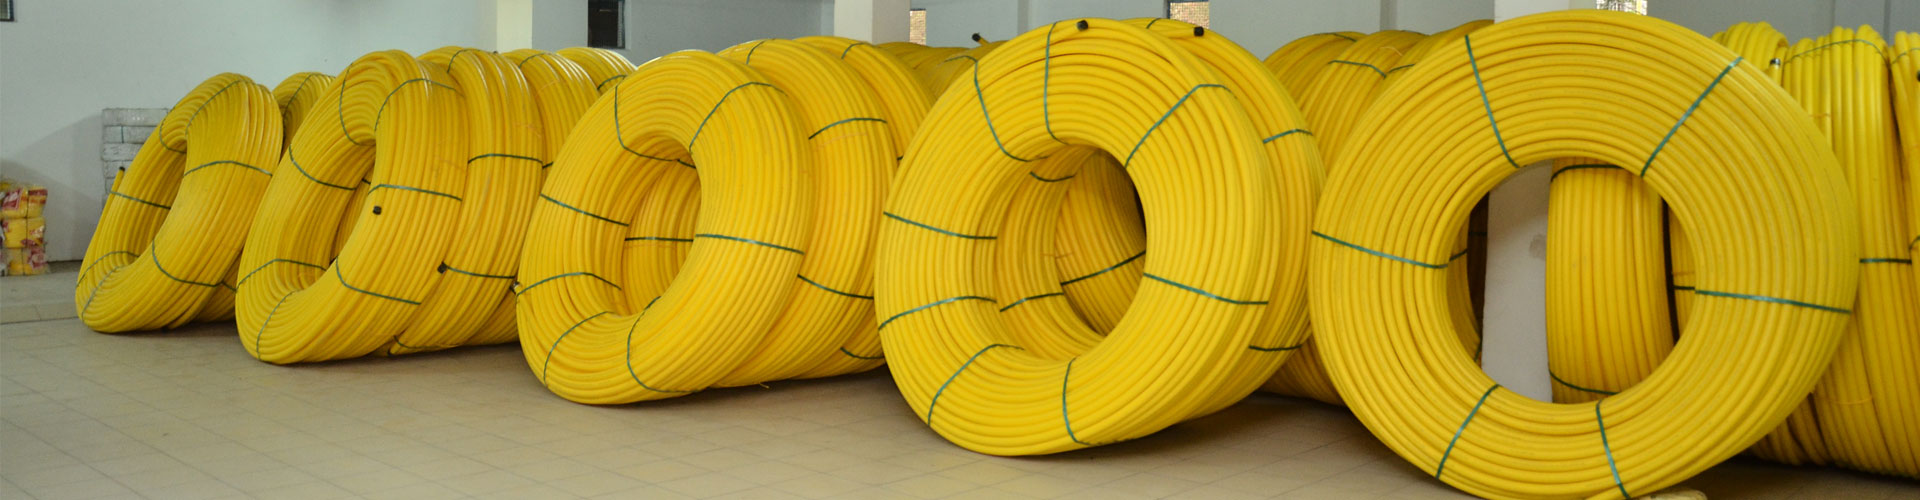 yellow telecom duct